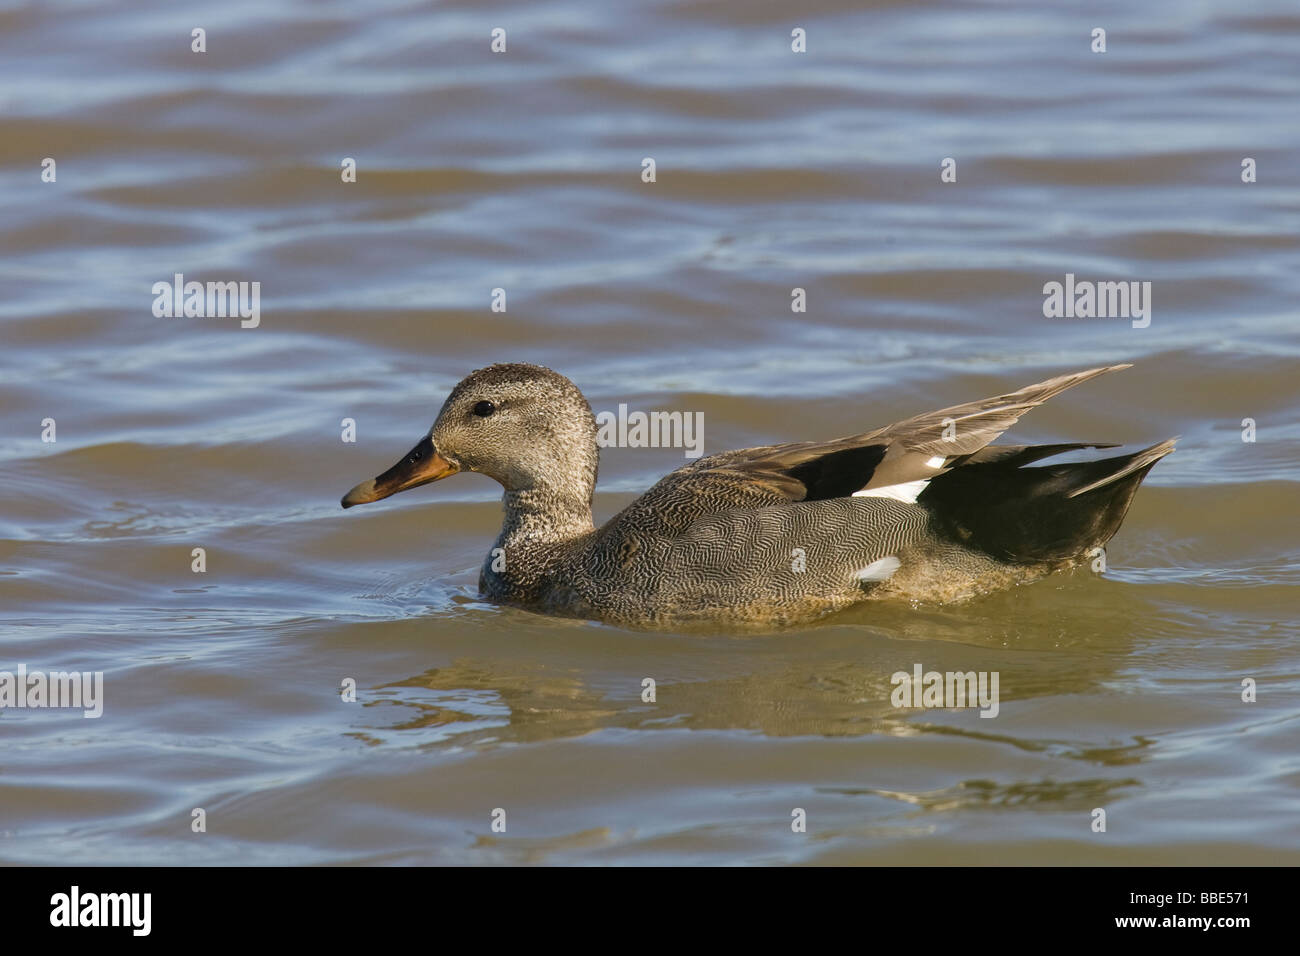 Male Gadwall (Anas strepera) swimming in a pond - Stock Image